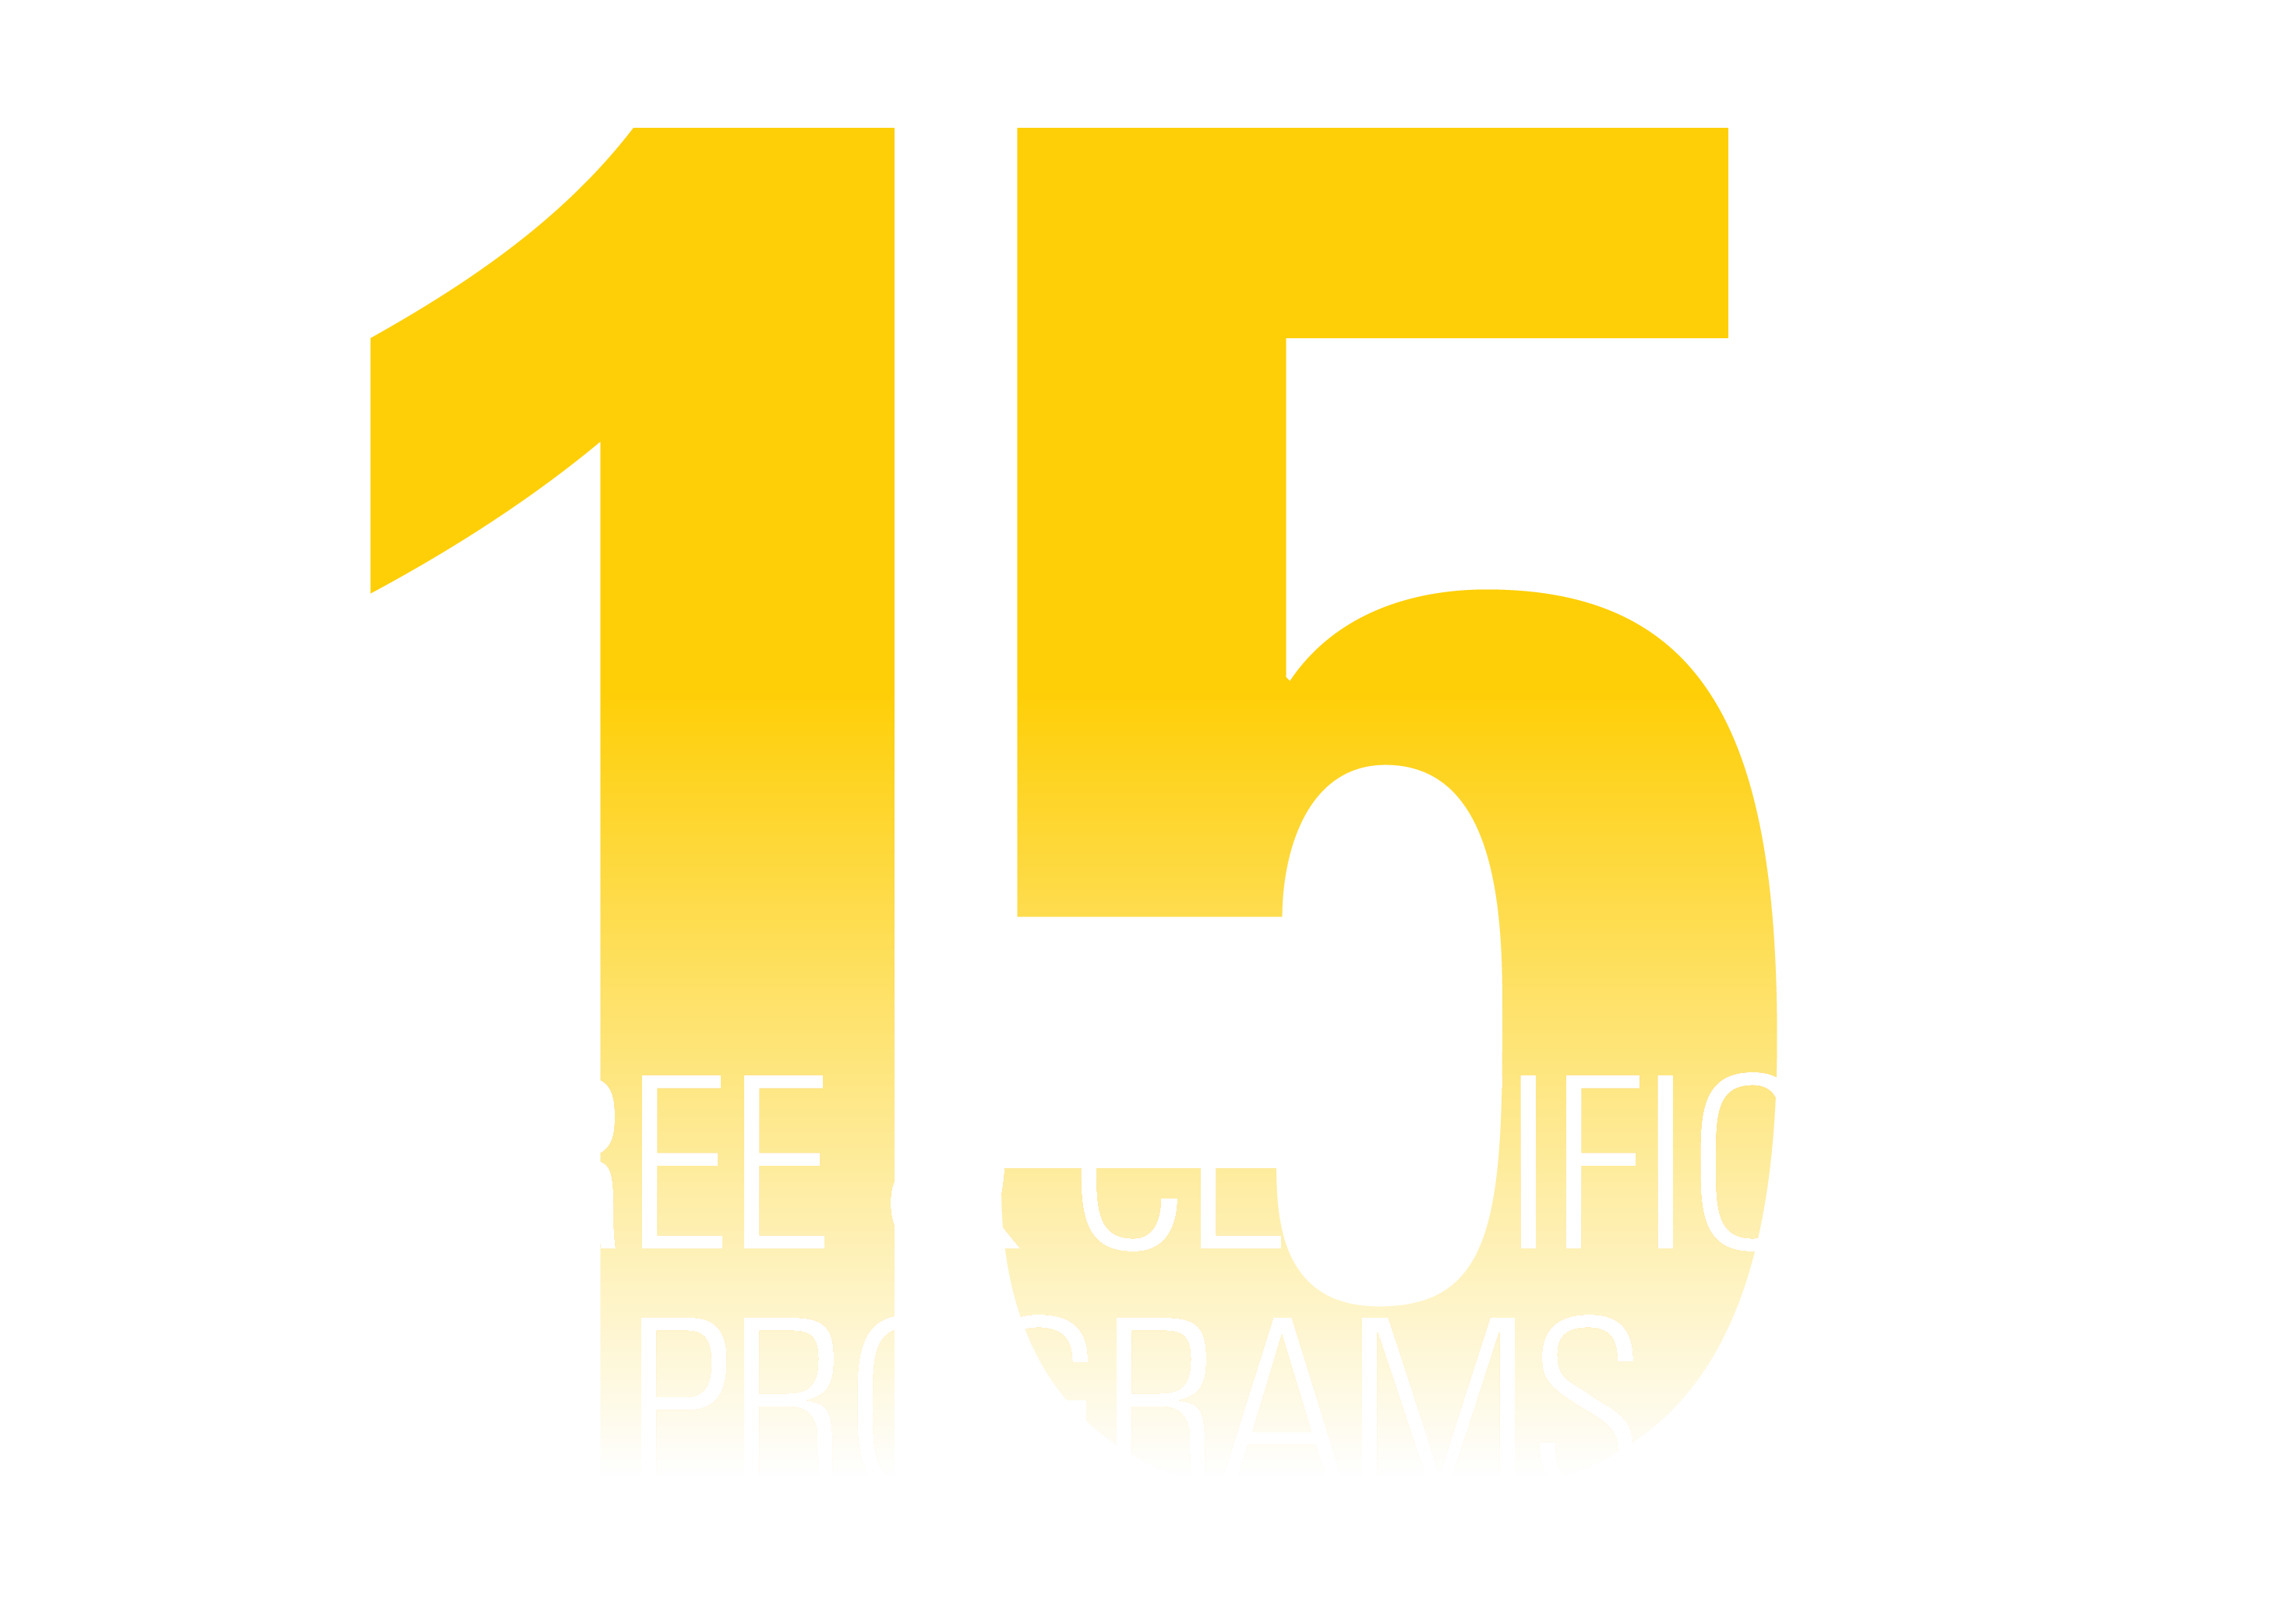 15 Degree and Certificate Programs